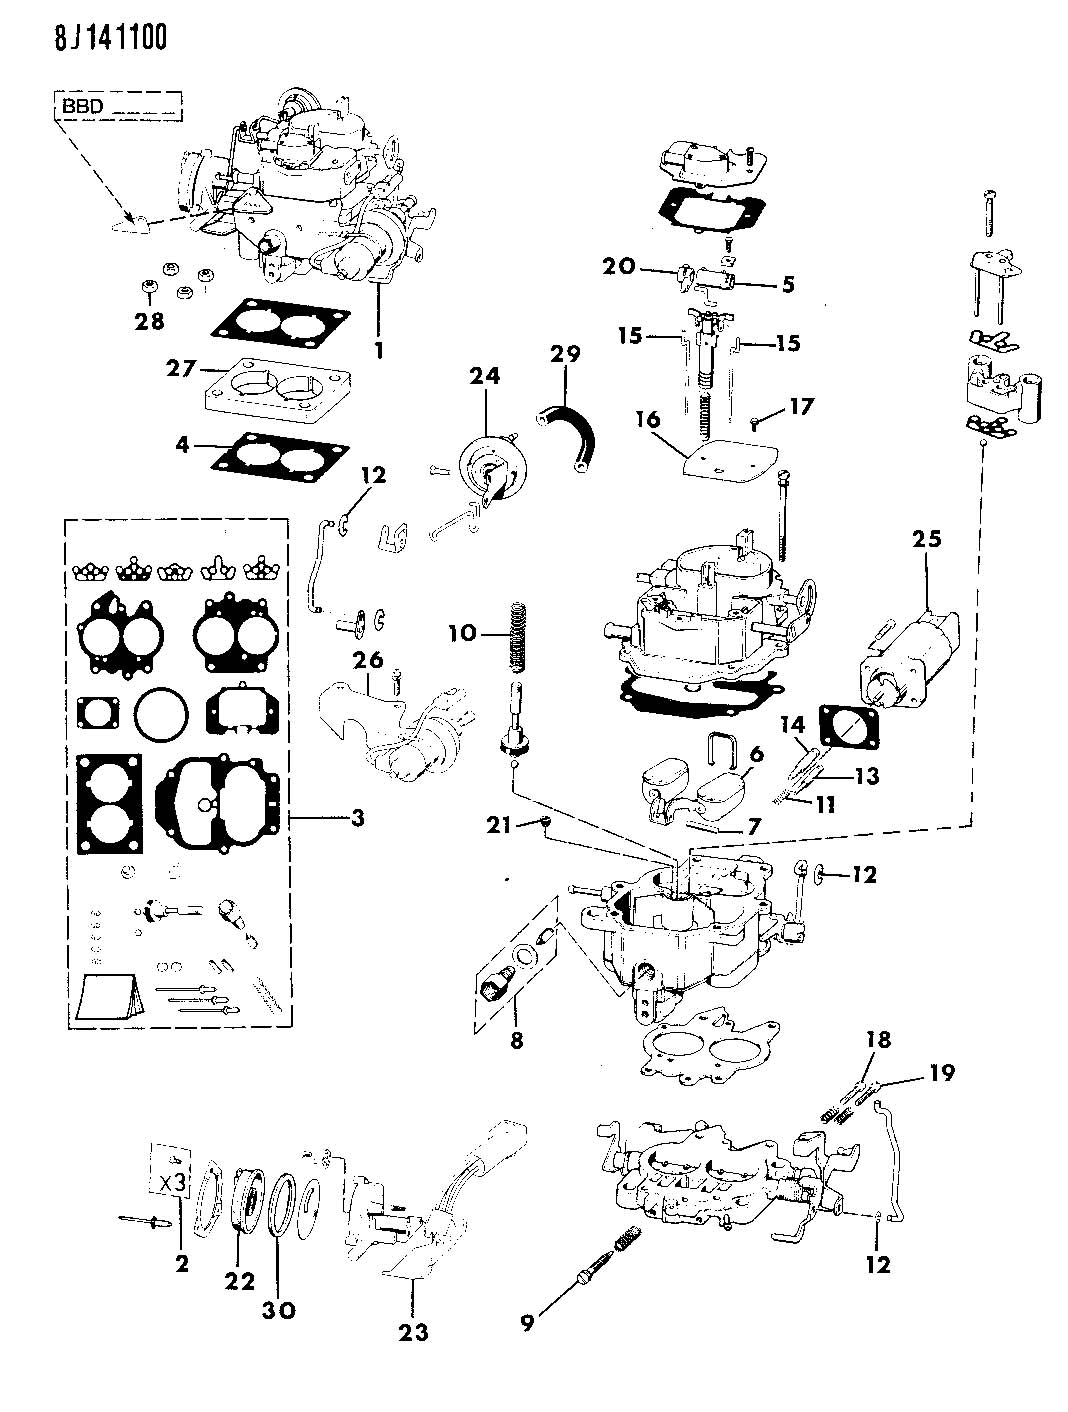 86 Cj7 Carburetor Diagram Another Blog About Wiring Large Layout Diagrams U2022 Rh Laurafinlay Co Uk